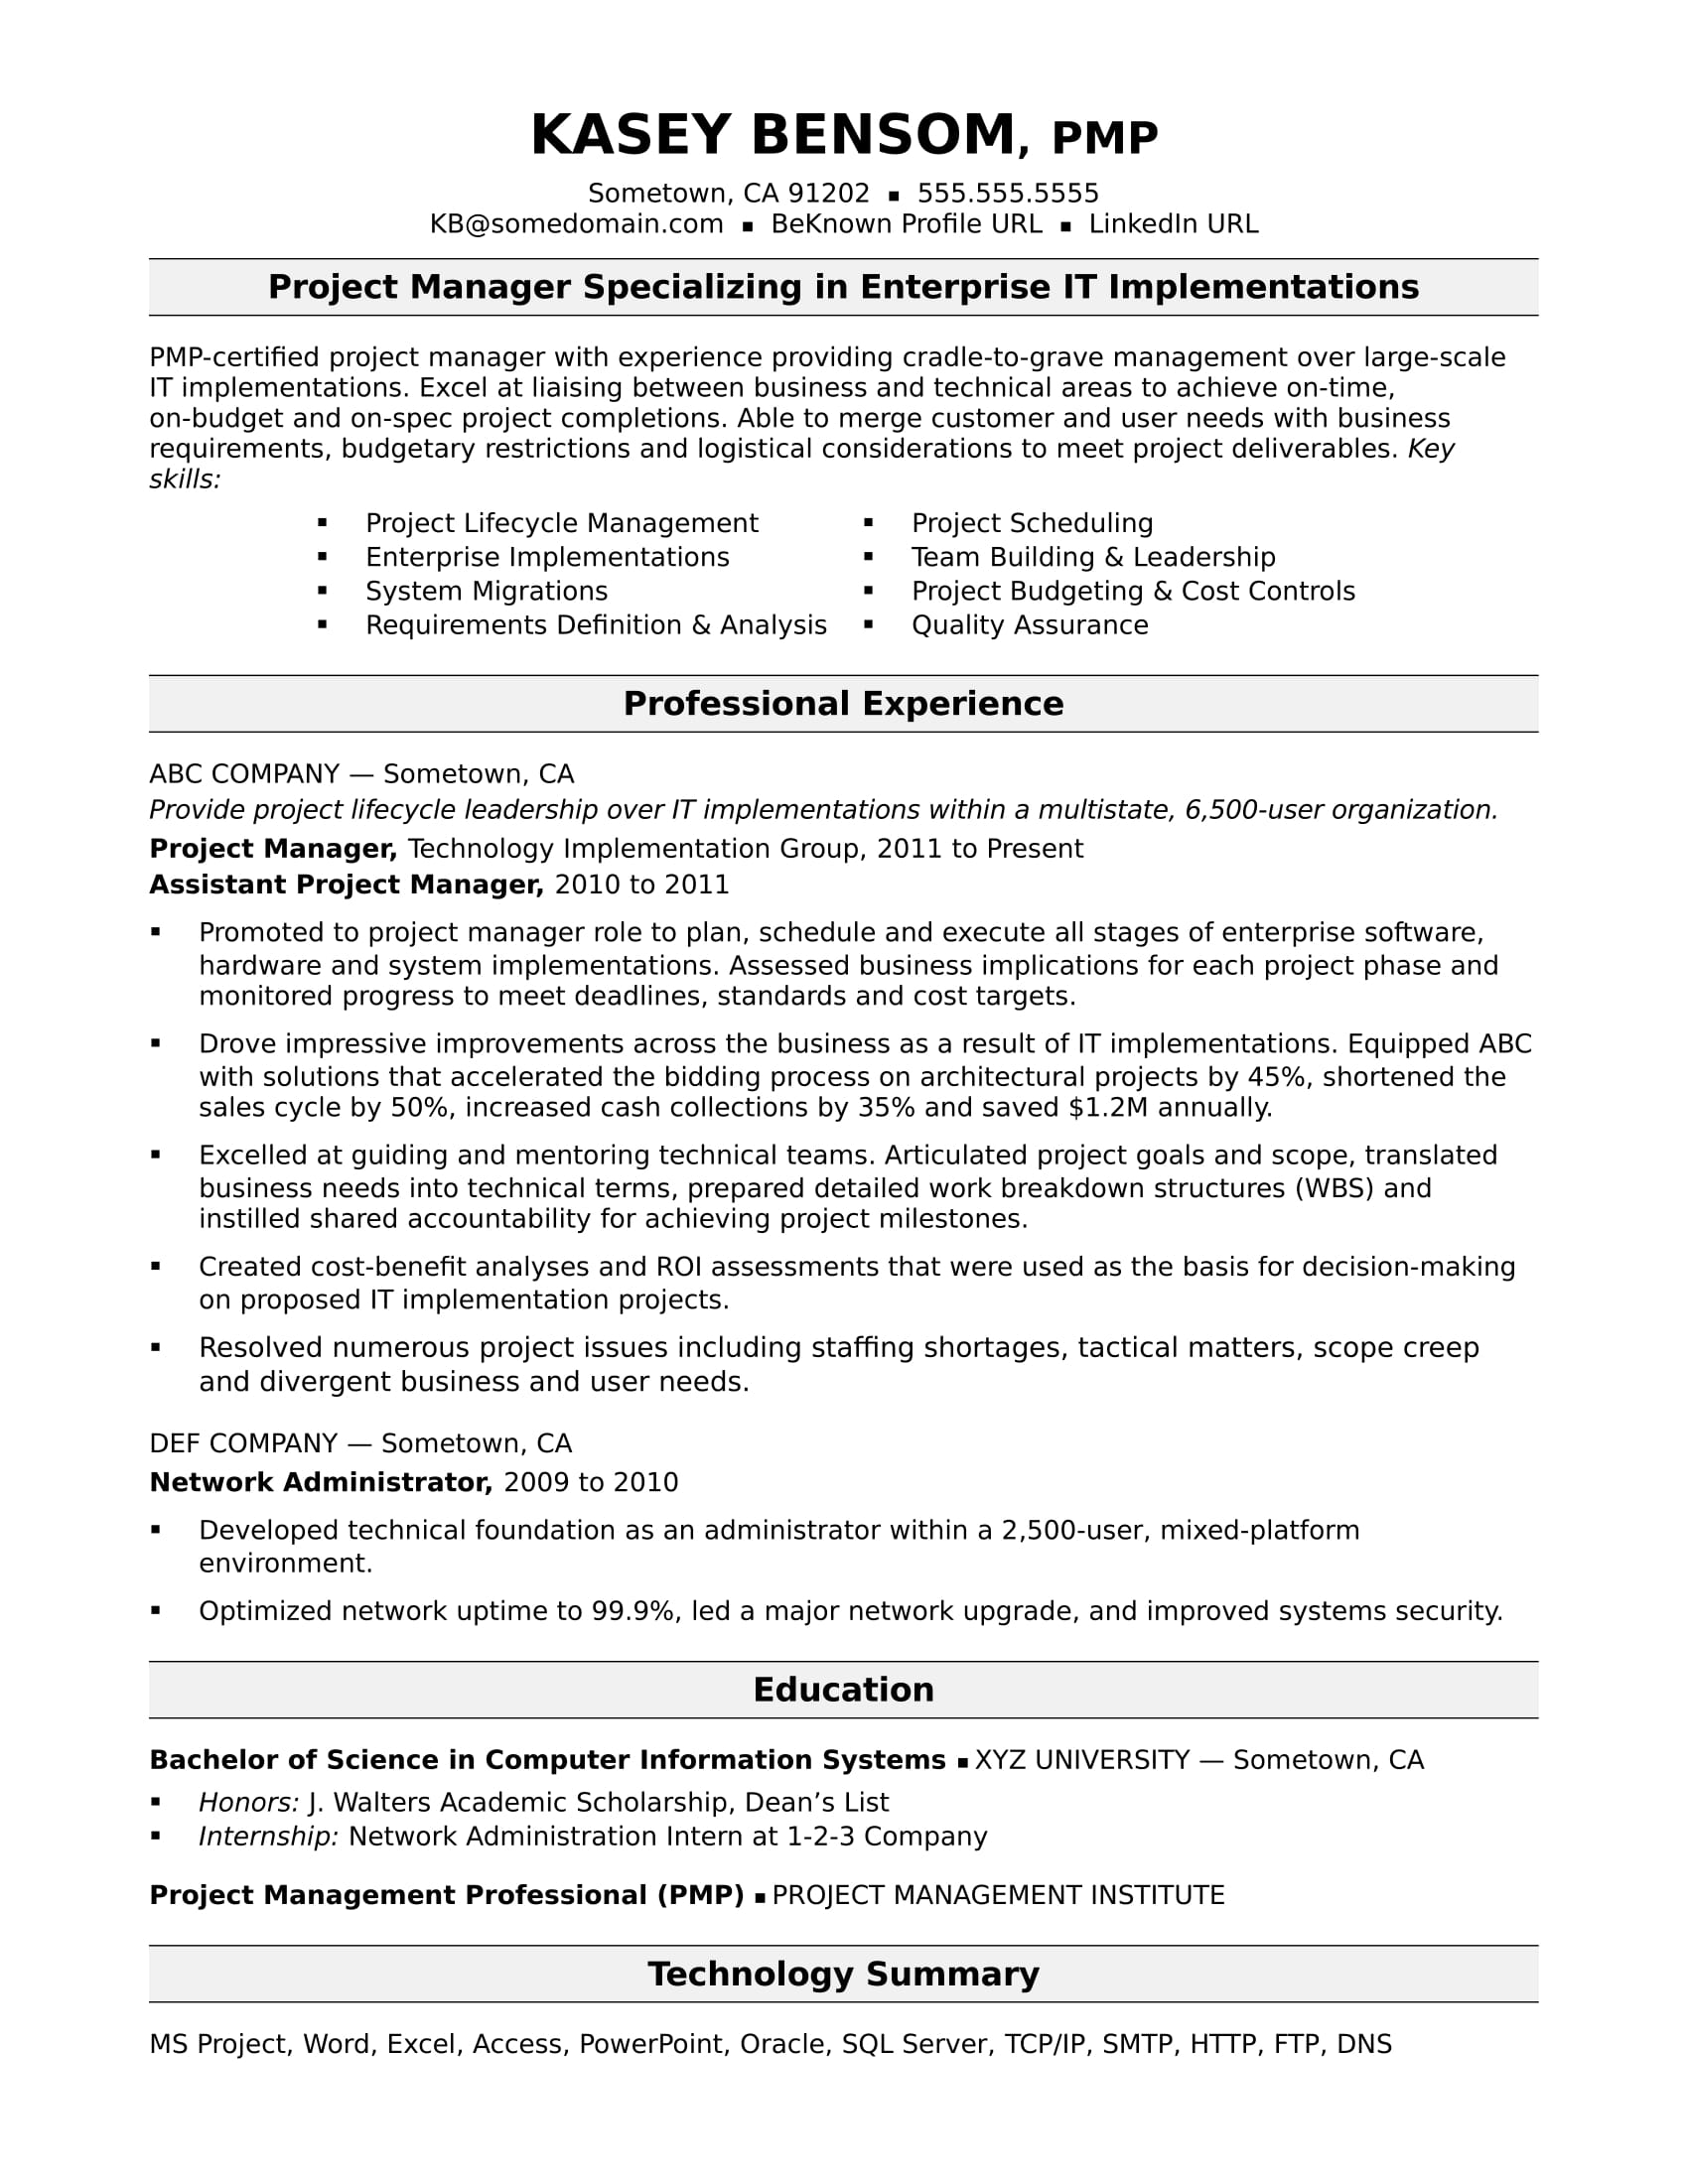 sample resume for midlevel it project manager monster duties research assistant college Resume Project Manager Duties Resume